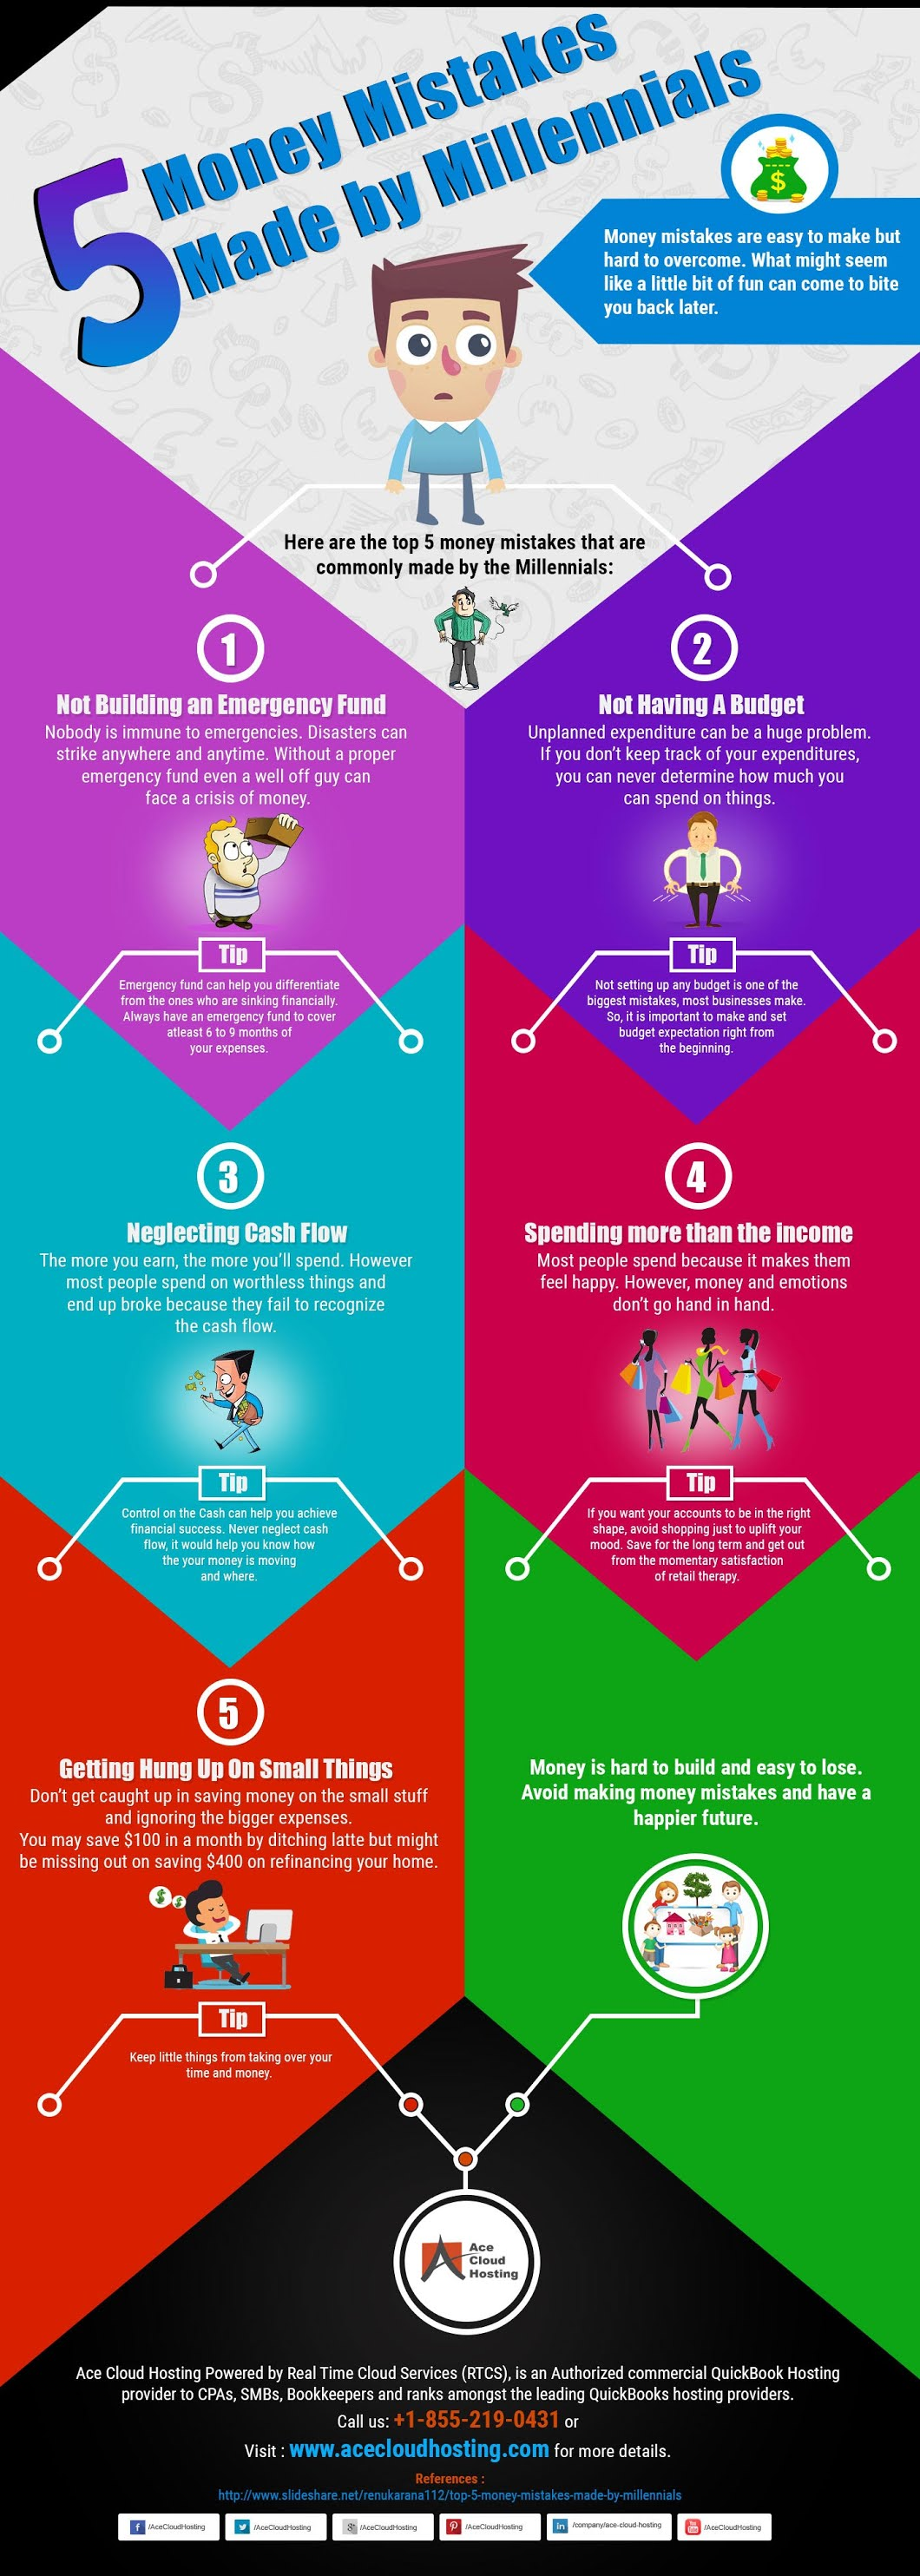 5 Money Mistakes Made By Millennials #infographic